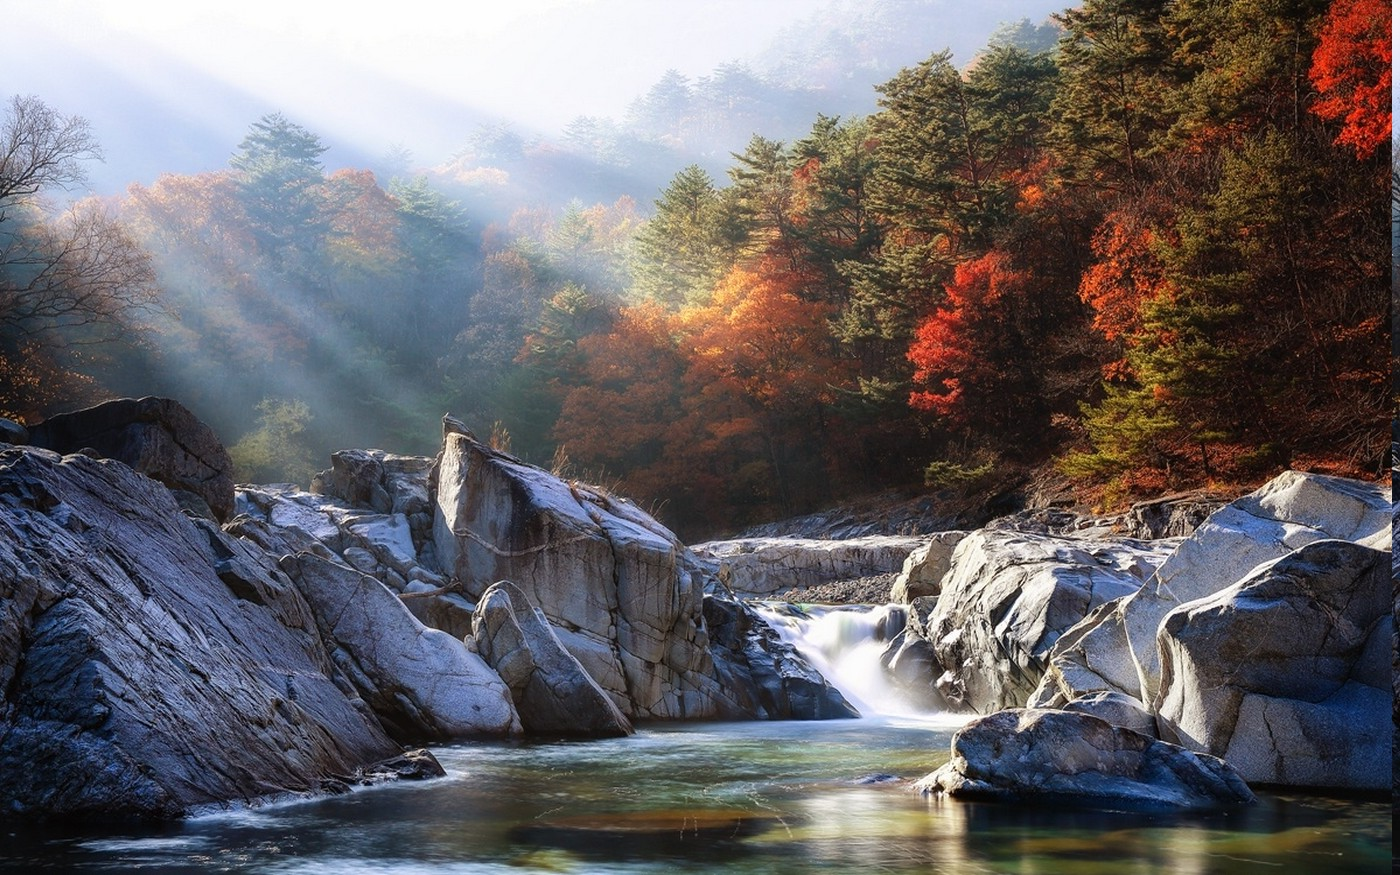 The Fall Movie Wallpaper Landscape Nature River Mist Forest Sunrise Fall Sun